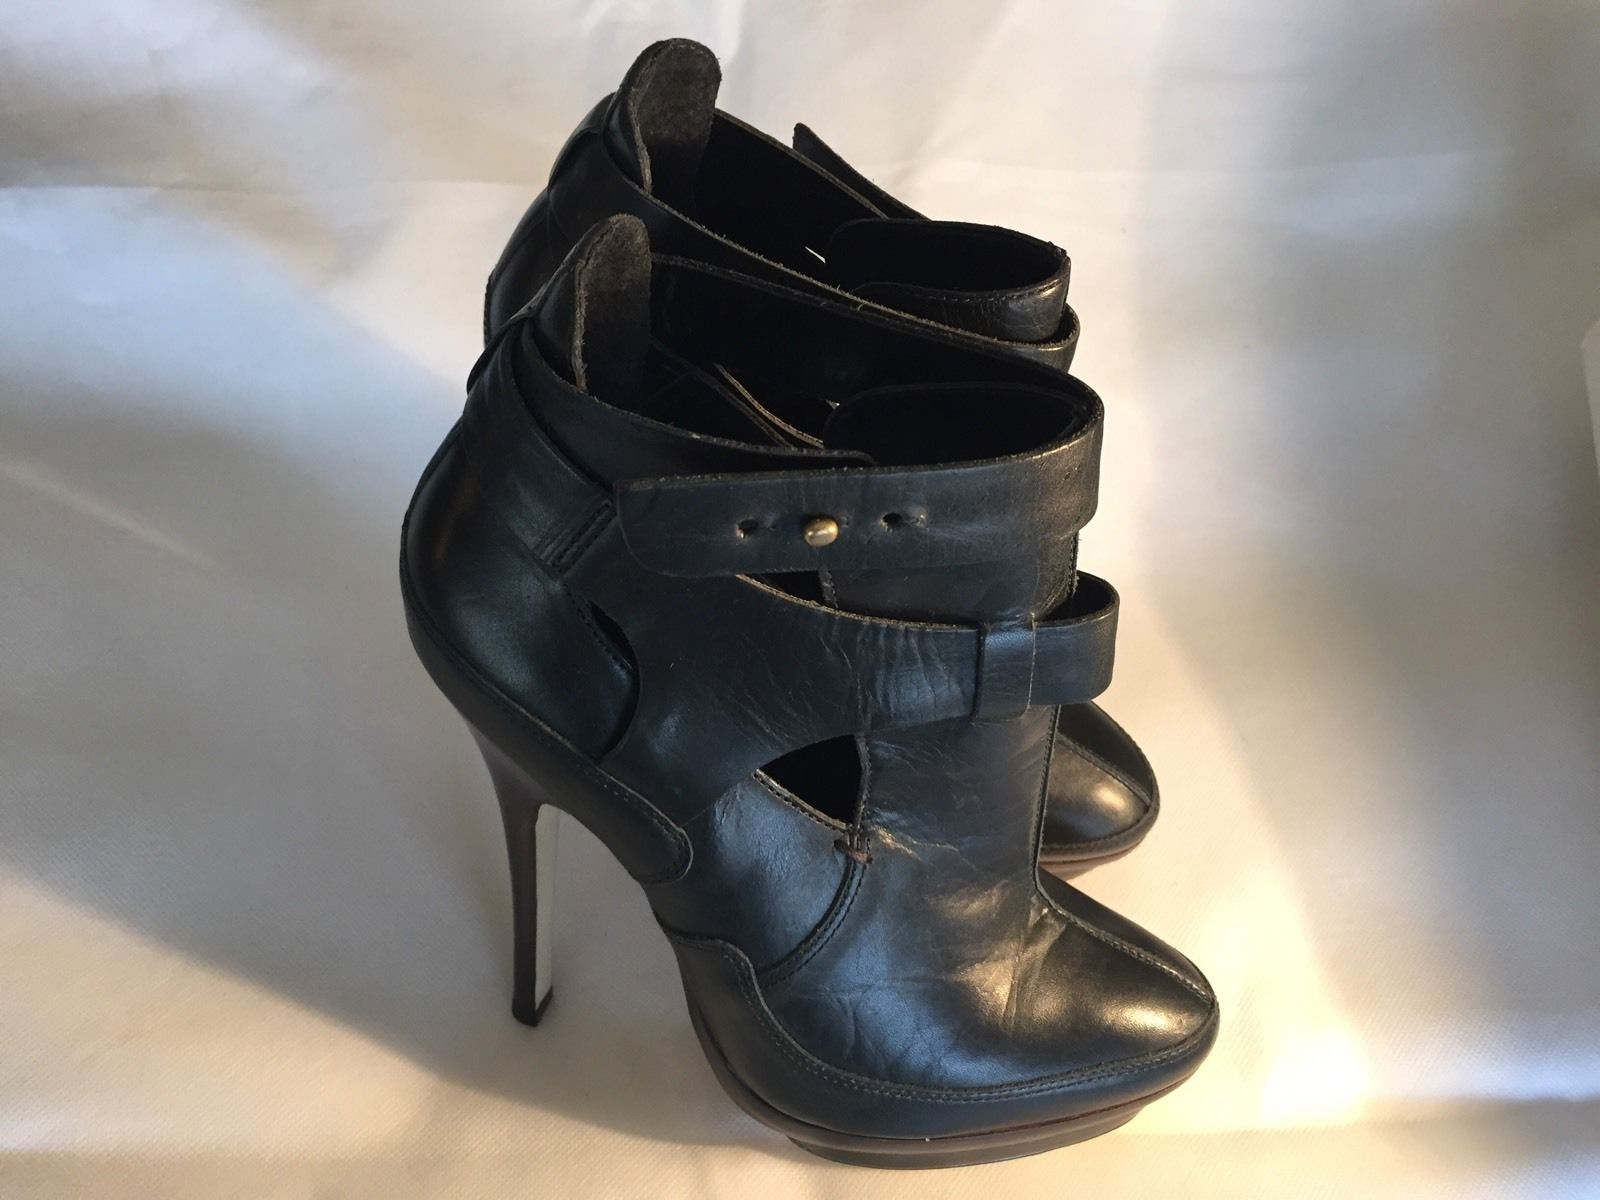 68c680bfc793c Aldo Black Leather High Strappy Ankle Boots 6